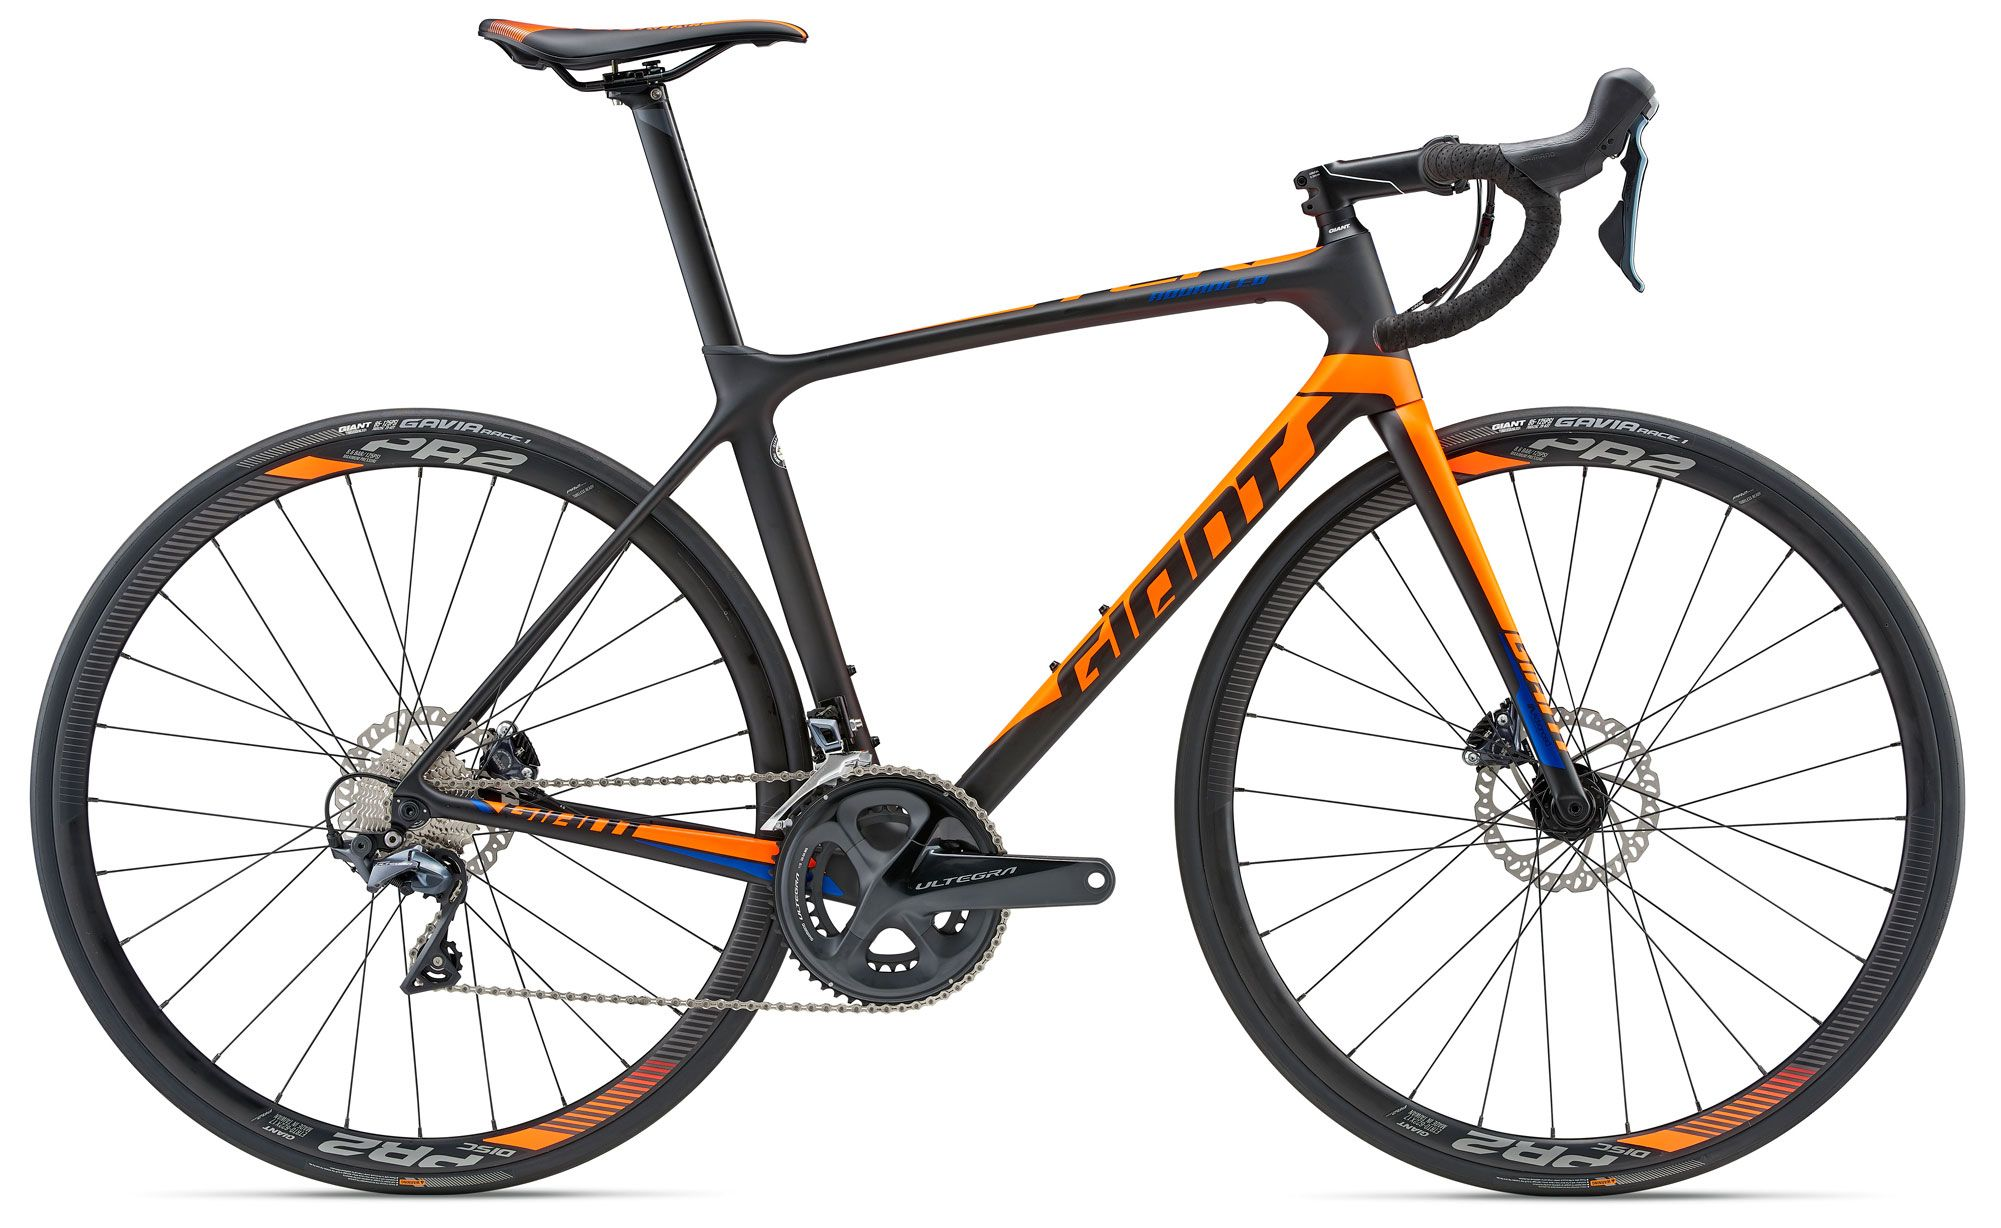 Велосипед Giant TCR Advanced 1 Disc 2018 велосипед giant trinity advanced pro 1 2016